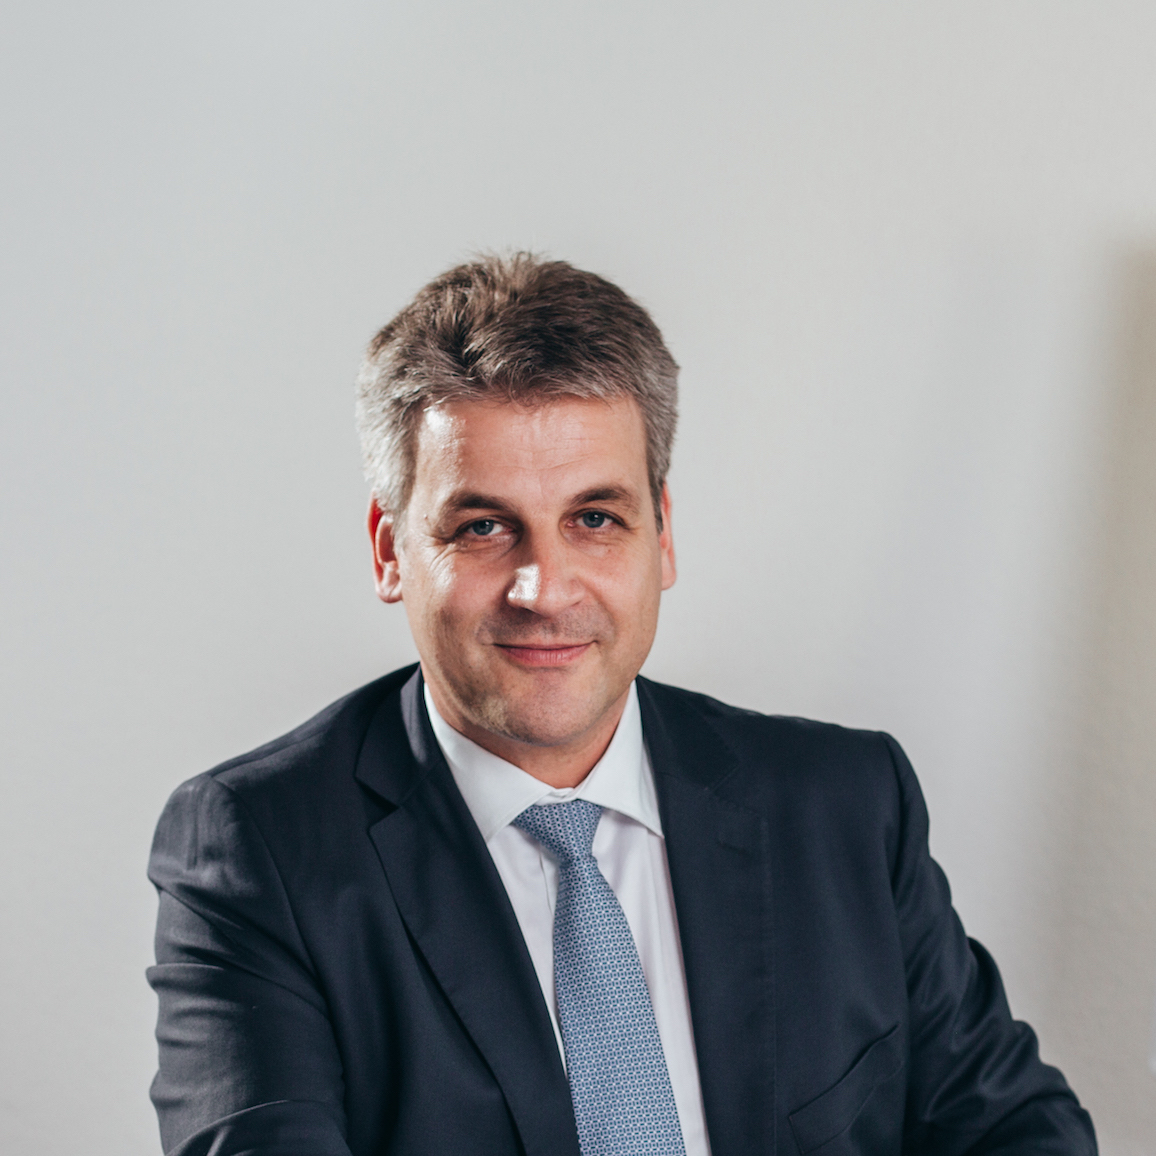 Michael Bitzer, Managing Director